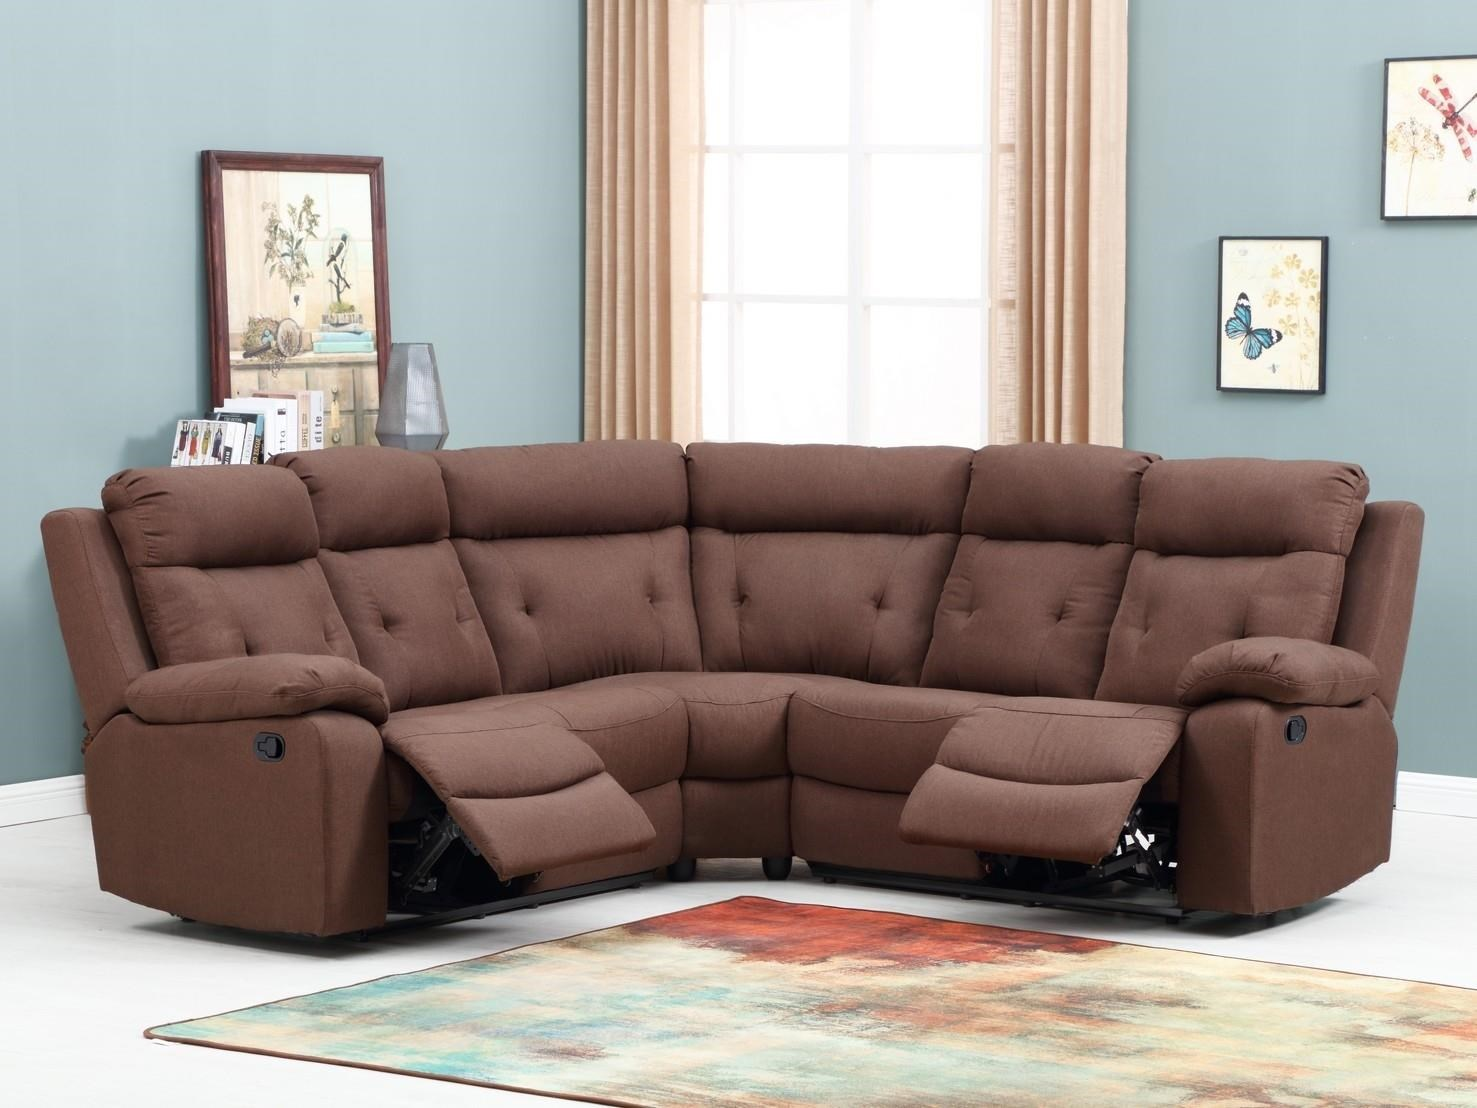 Global Furniture 9443 Reclining Sectional Sofa - Item Number: 9443